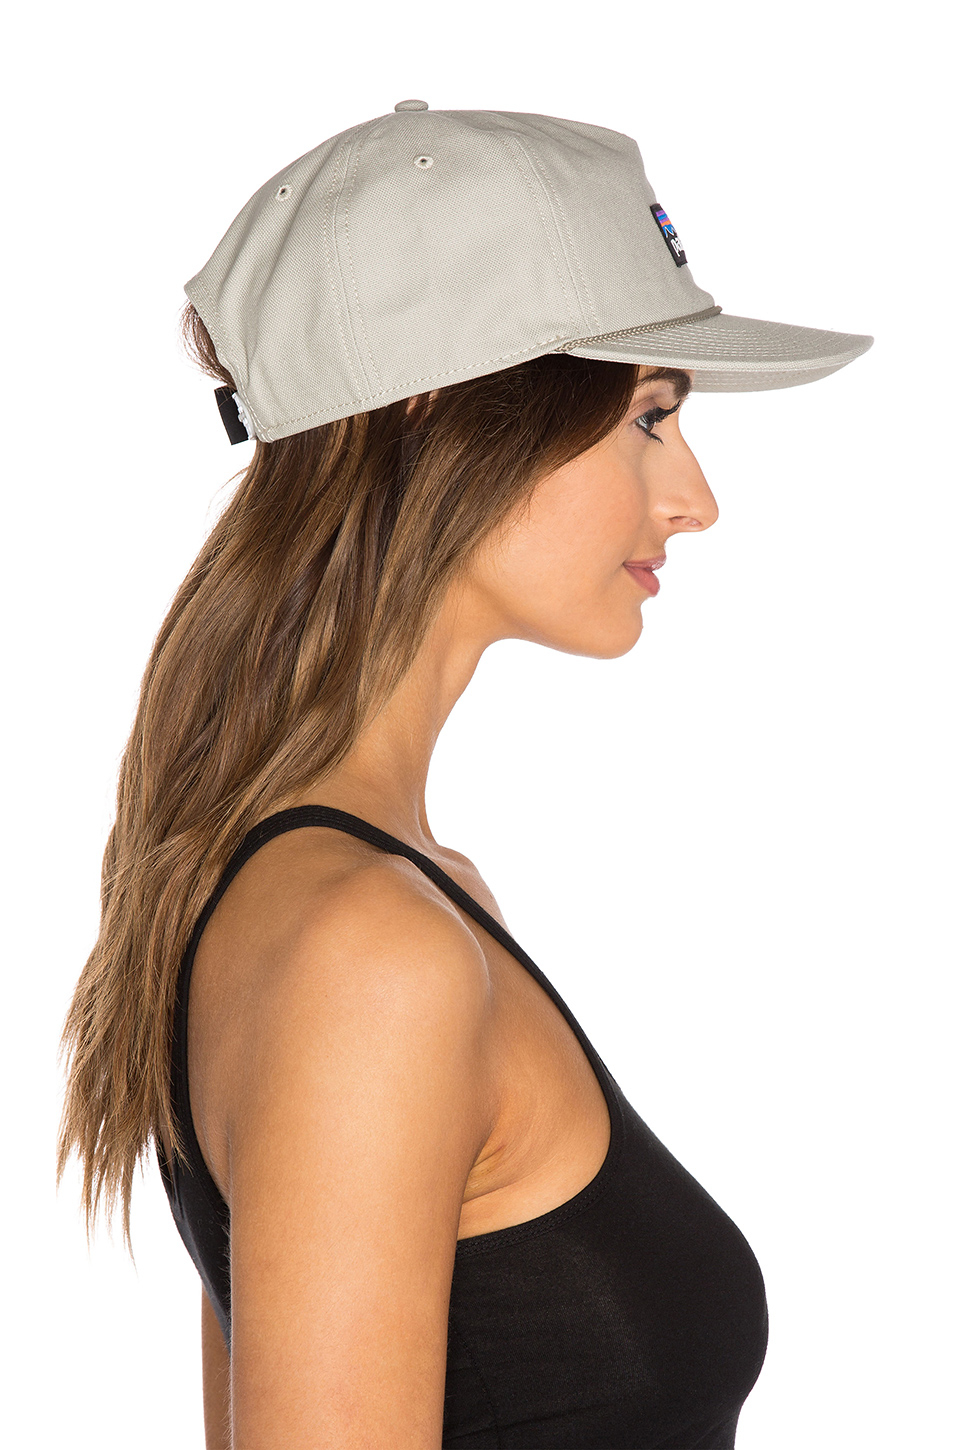 Lyst - Patagonia P-label Stand Up Hat in Gray 601a22756fba